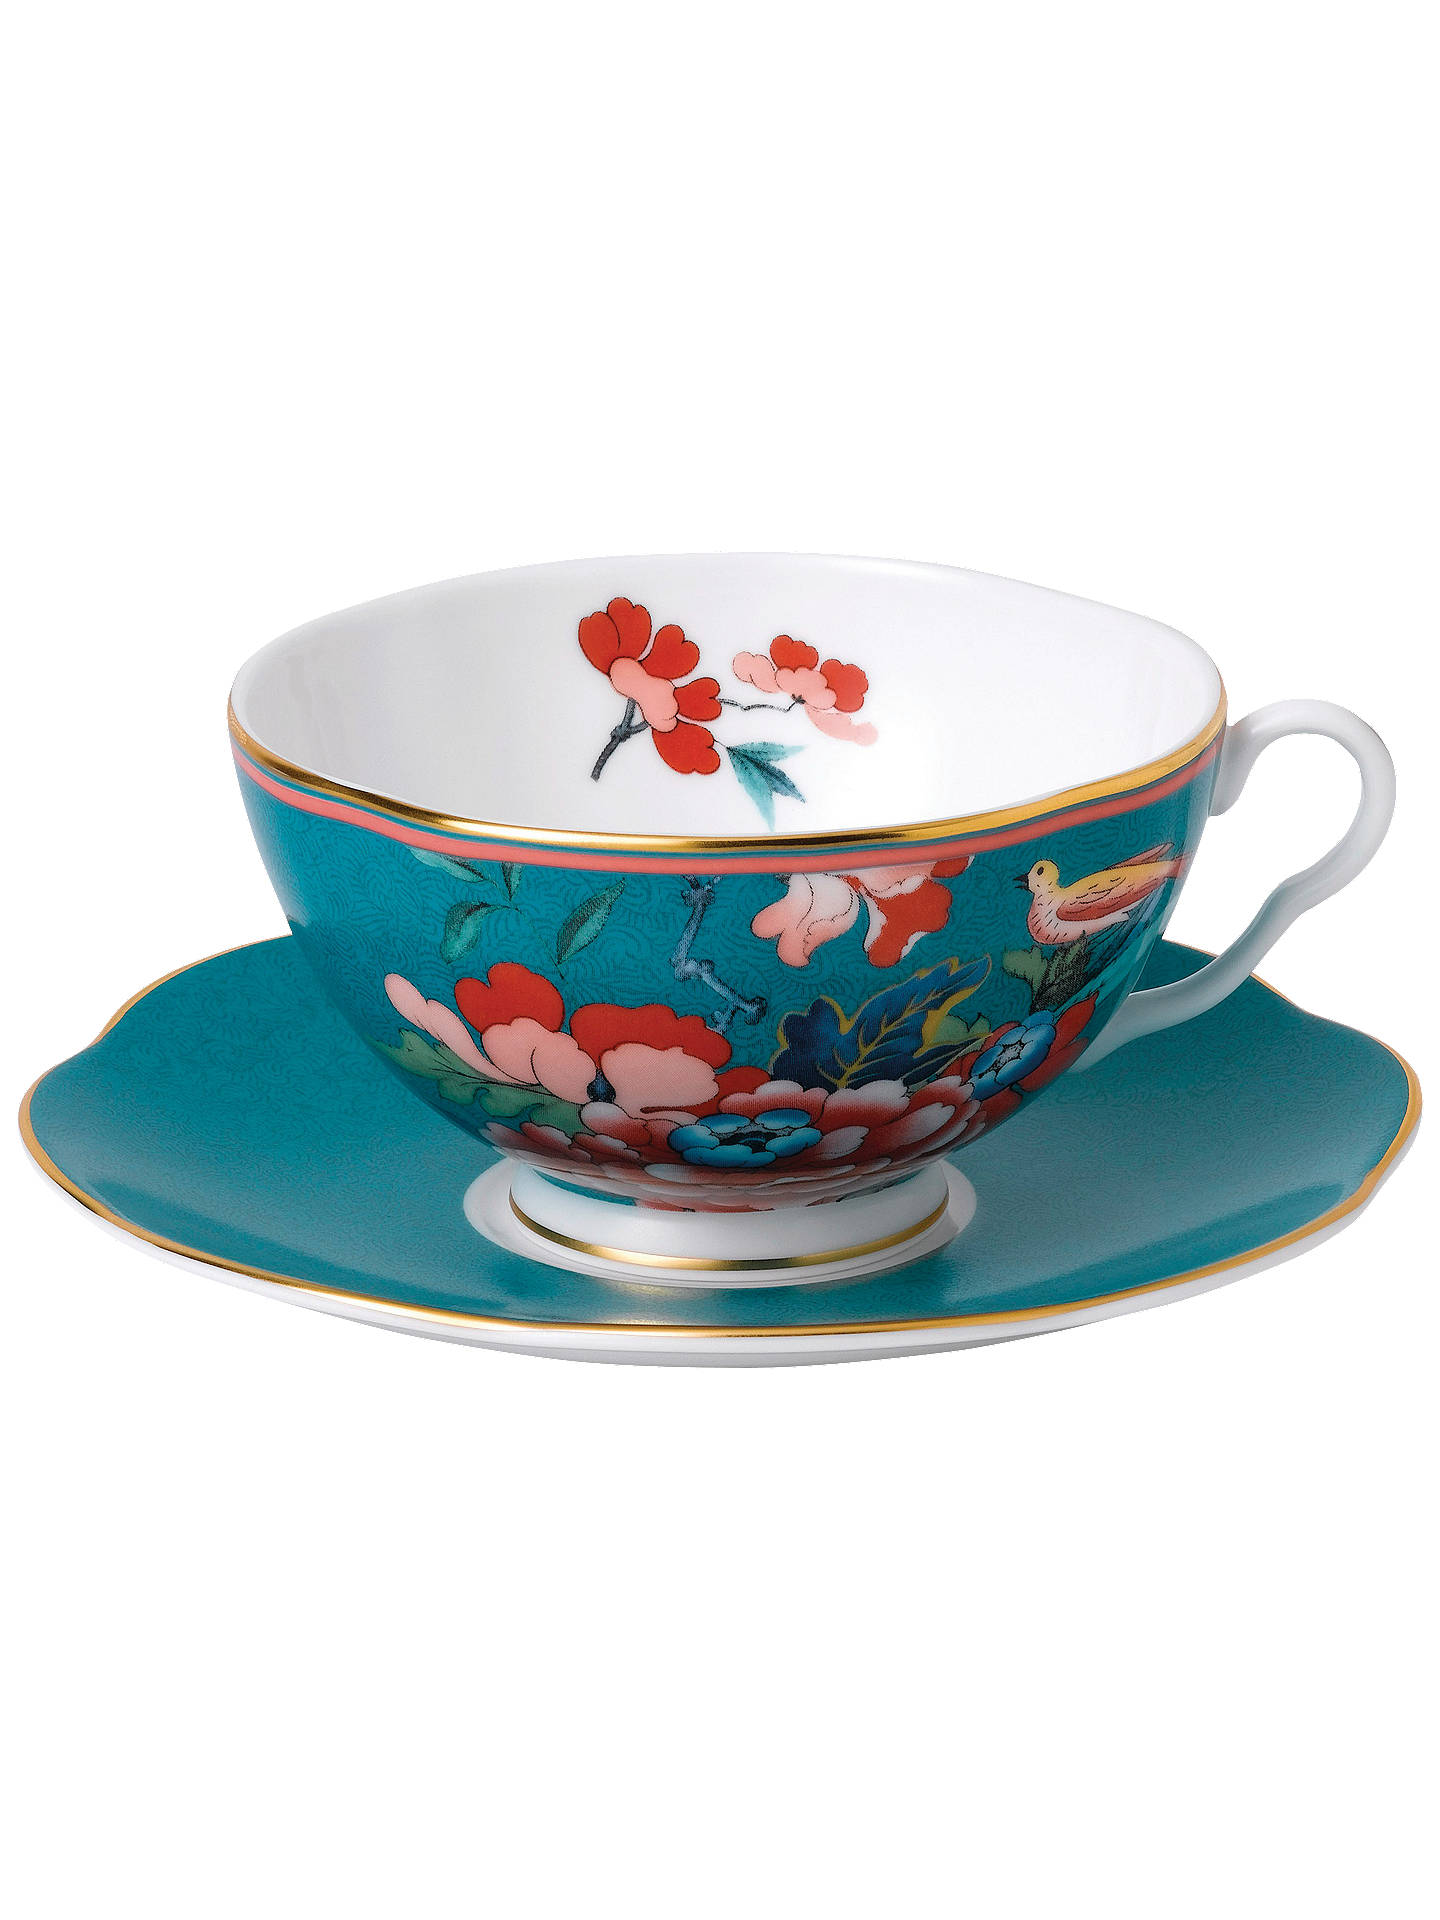 Wedgwood Paeonia Blush Tea Cup And Saucer 200ml Green